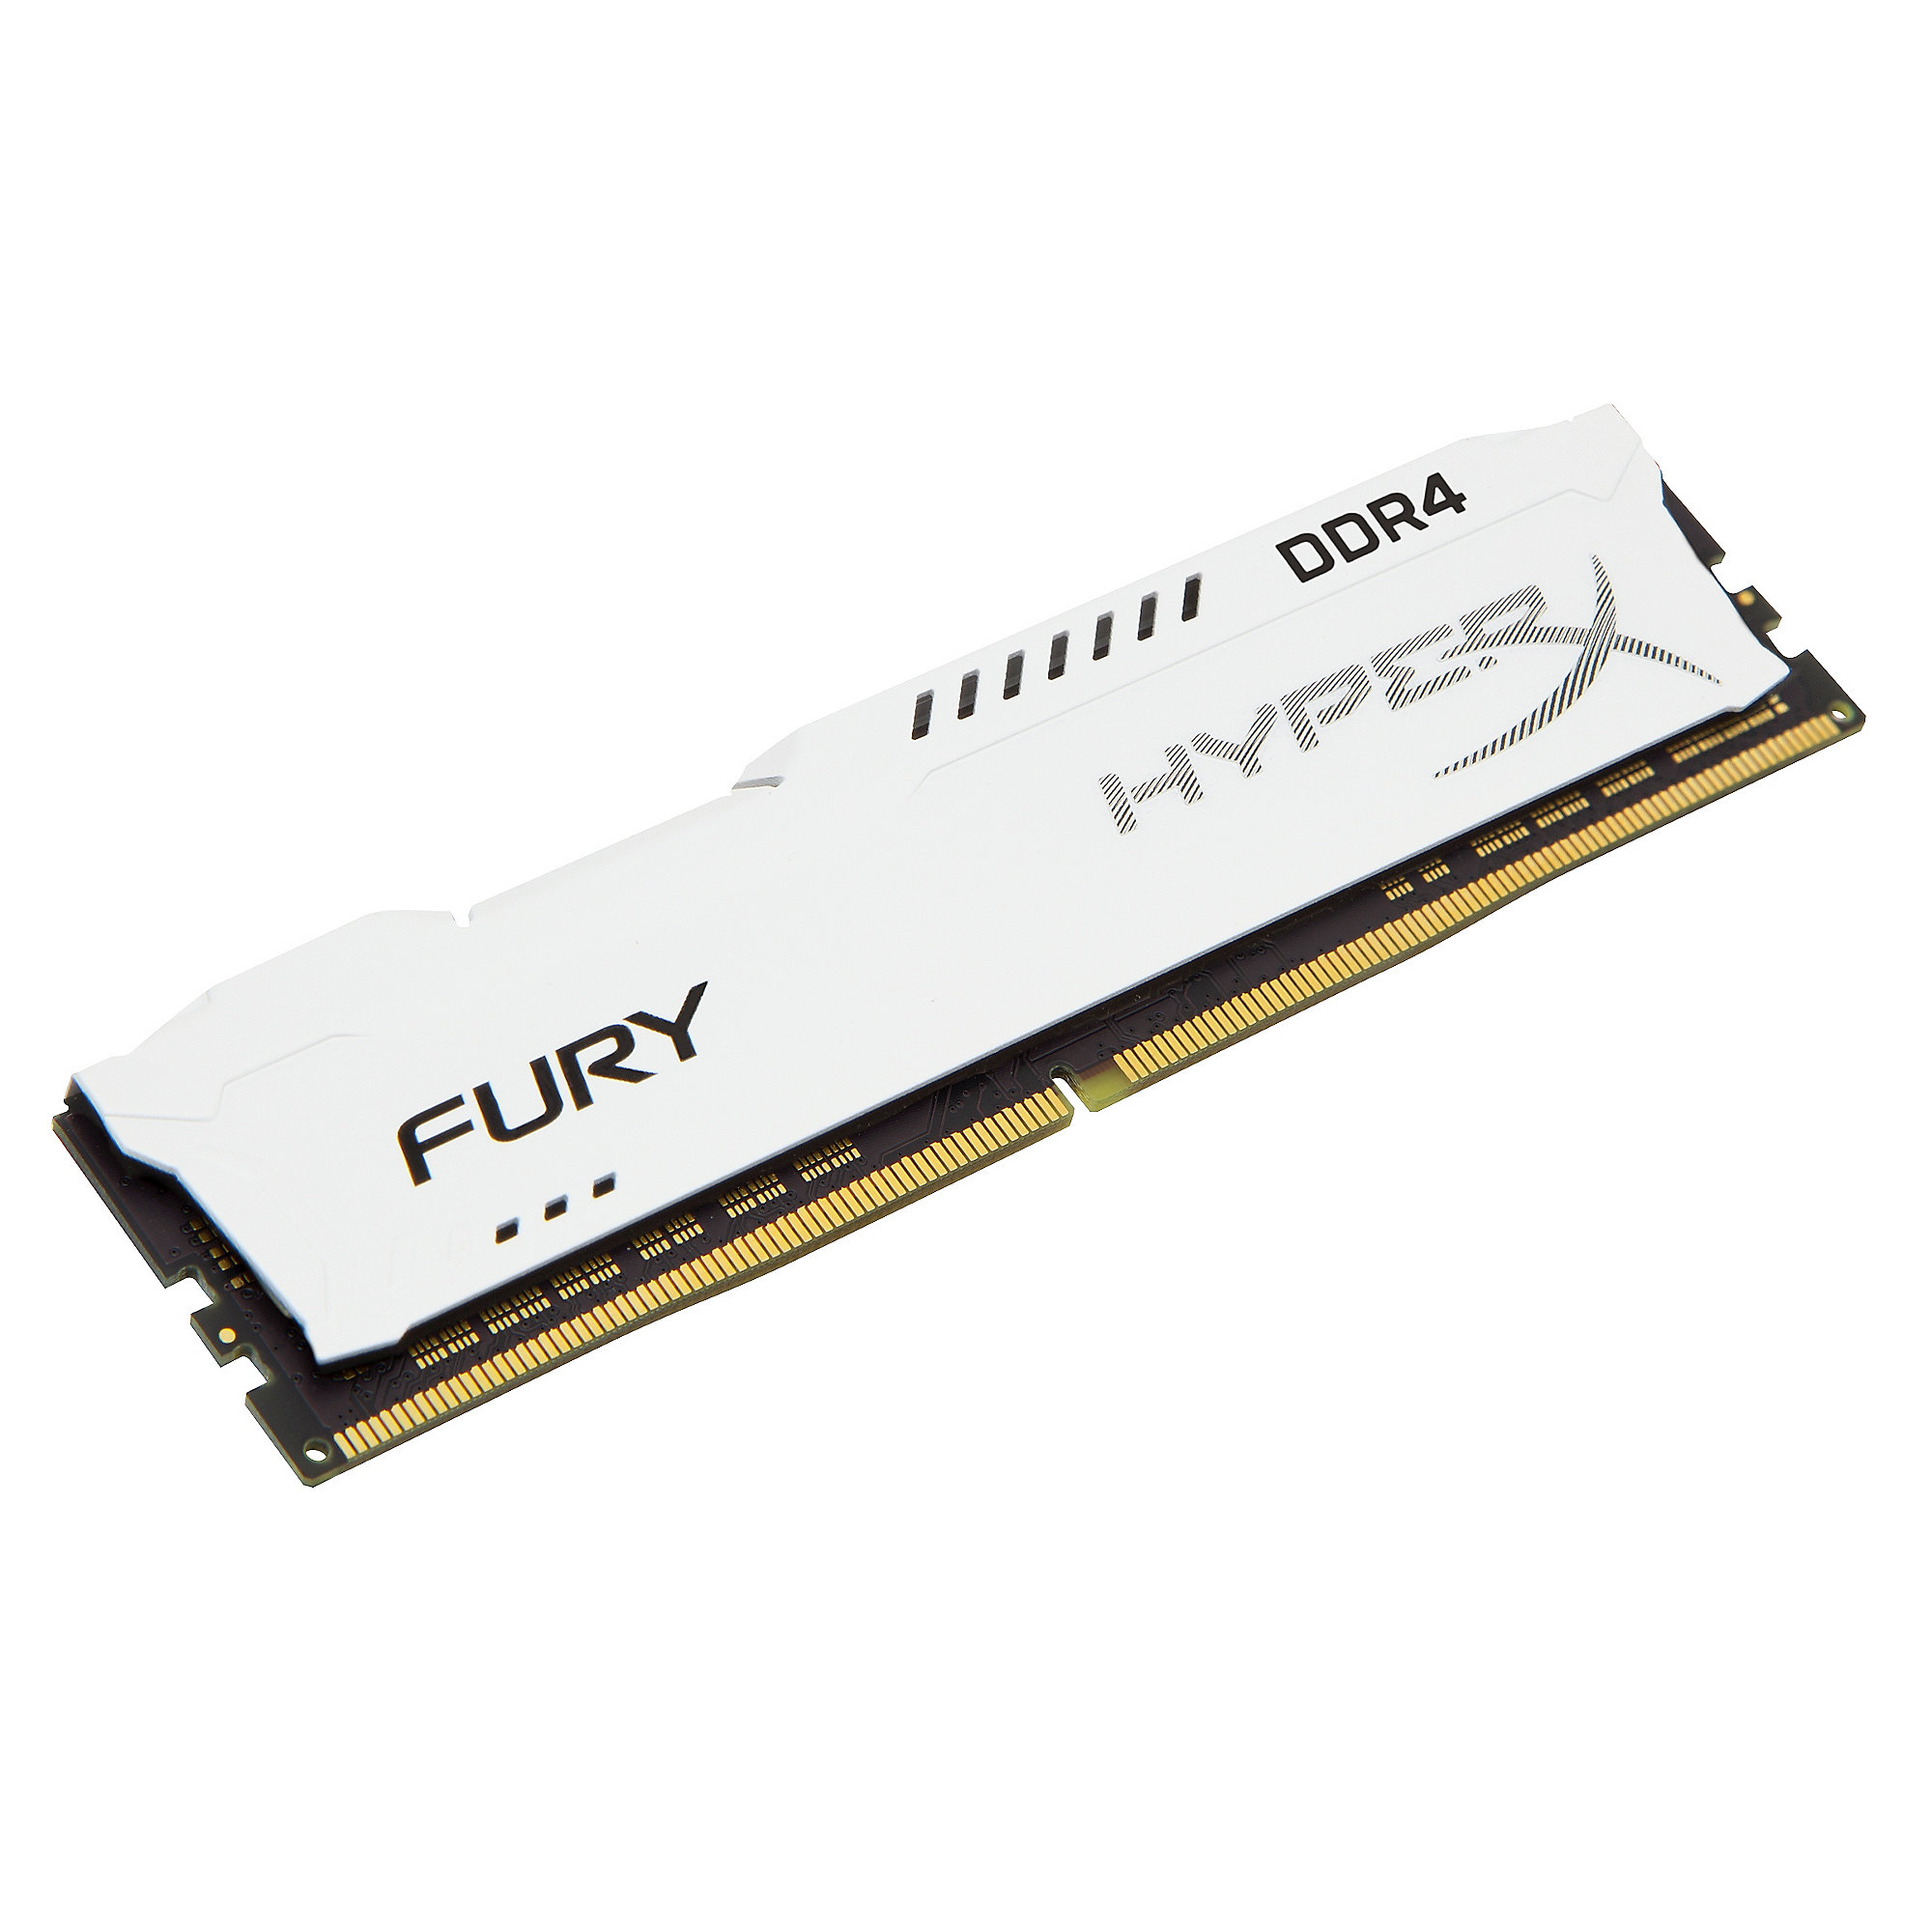 32GB (2x16GB) HyperX Fury weiß DDR4-2666 CL16 RAM Kit